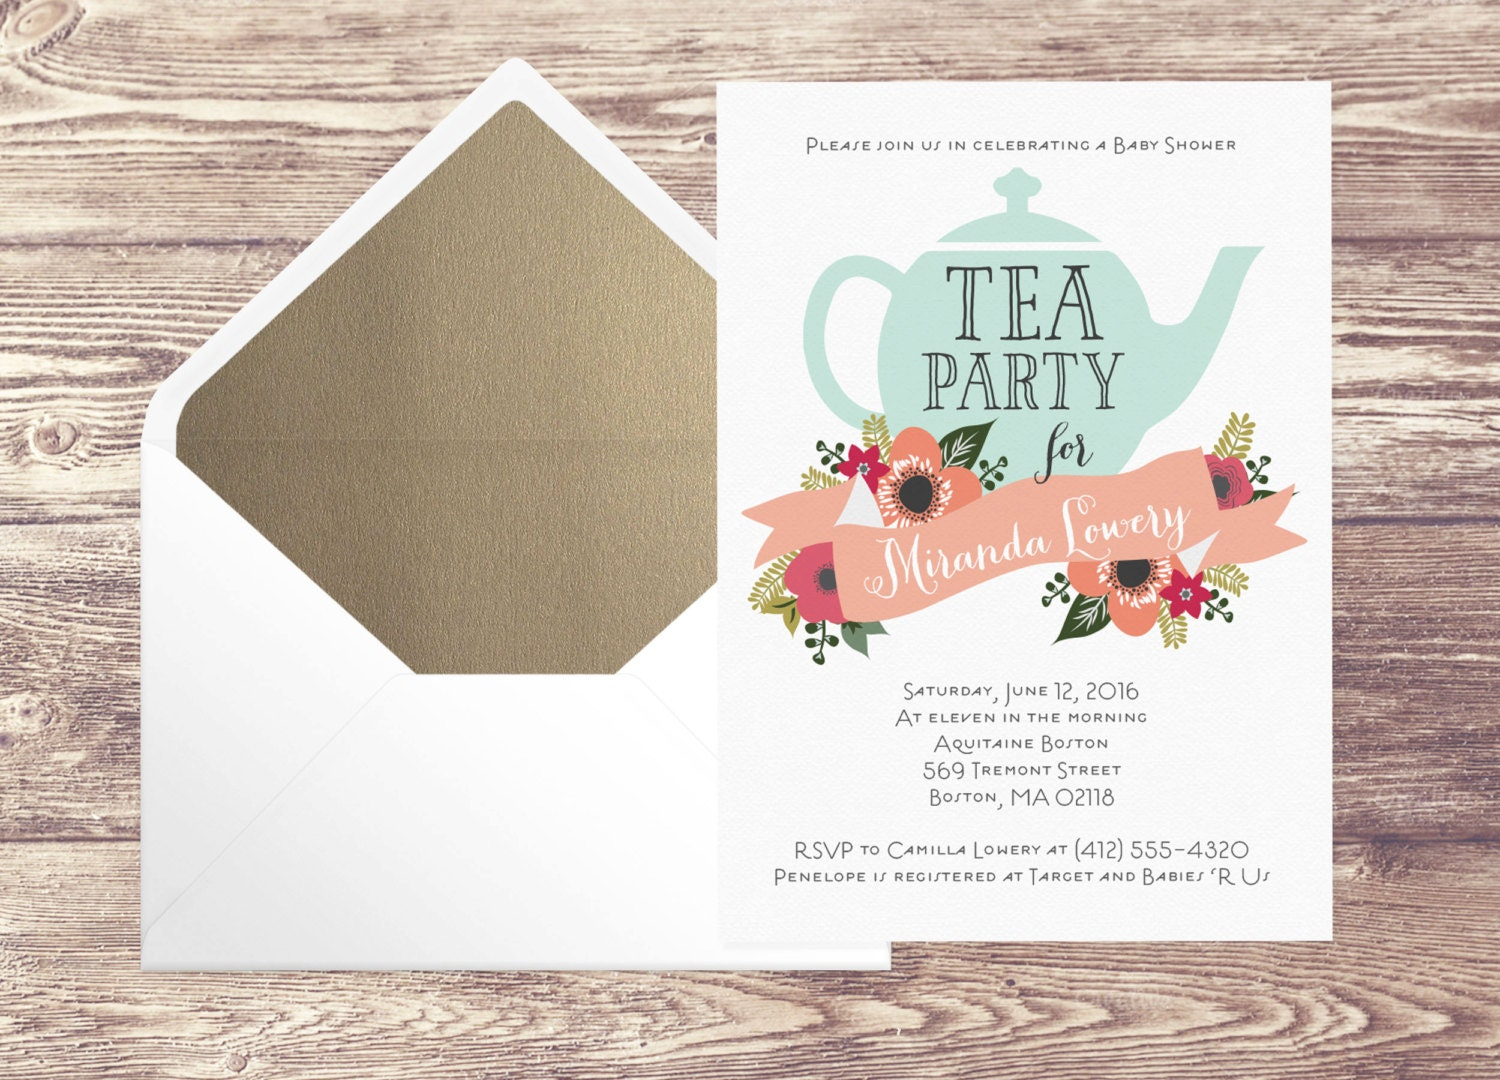 printed baby shower tea party invitation with gold envelope